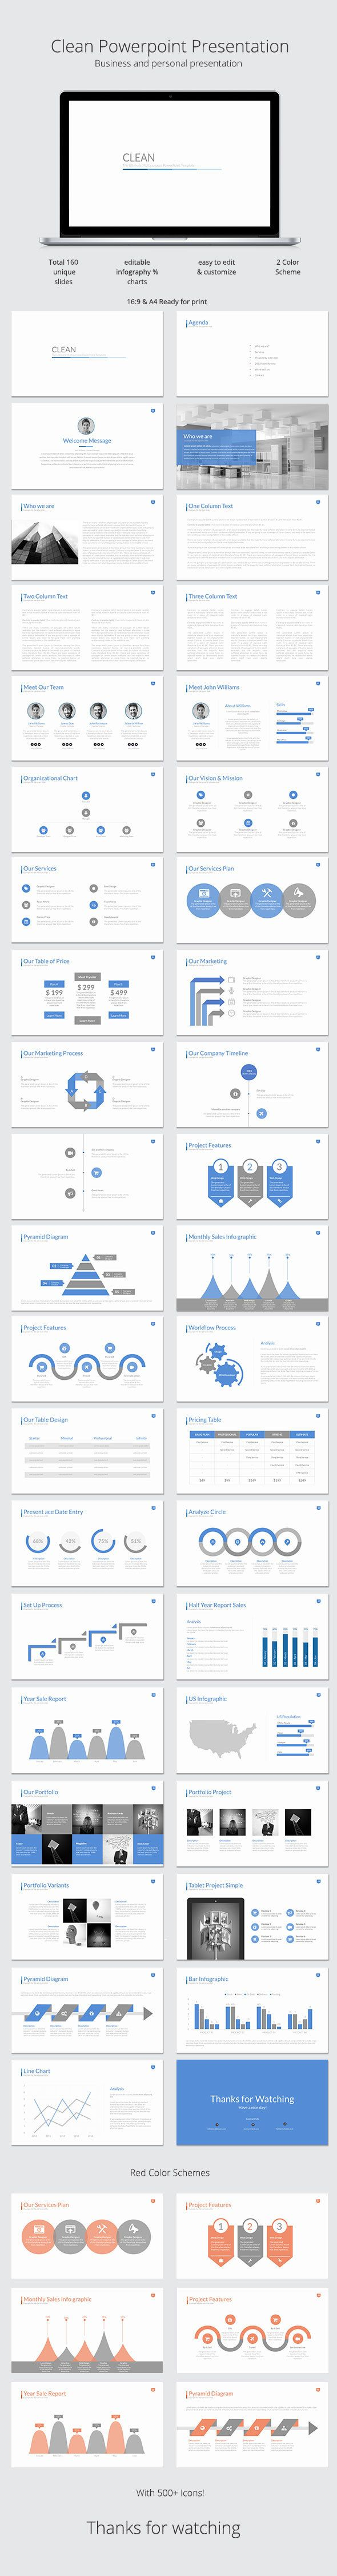 Usdgus  Marvelous  Ideas About Powerpoint Presentations On Pinterest With Exciting Clean Powerpoint Template With Amusing How To Create Timelines In Powerpoint Also Pangea Powerpoint In Addition Quiz Show Powerpoint Templates And Advantages Of Using Powerpoint As Well As Free Design Templates For Powerpoint Additionally Powerpoint Presentation On Marketing From Pinterestcom With Usdgus  Exciting  Ideas About Powerpoint Presentations On Pinterest With Amusing Clean Powerpoint Template And Marvelous How To Create Timelines In Powerpoint Also Pangea Powerpoint In Addition Quiz Show Powerpoint Templates From Pinterestcom